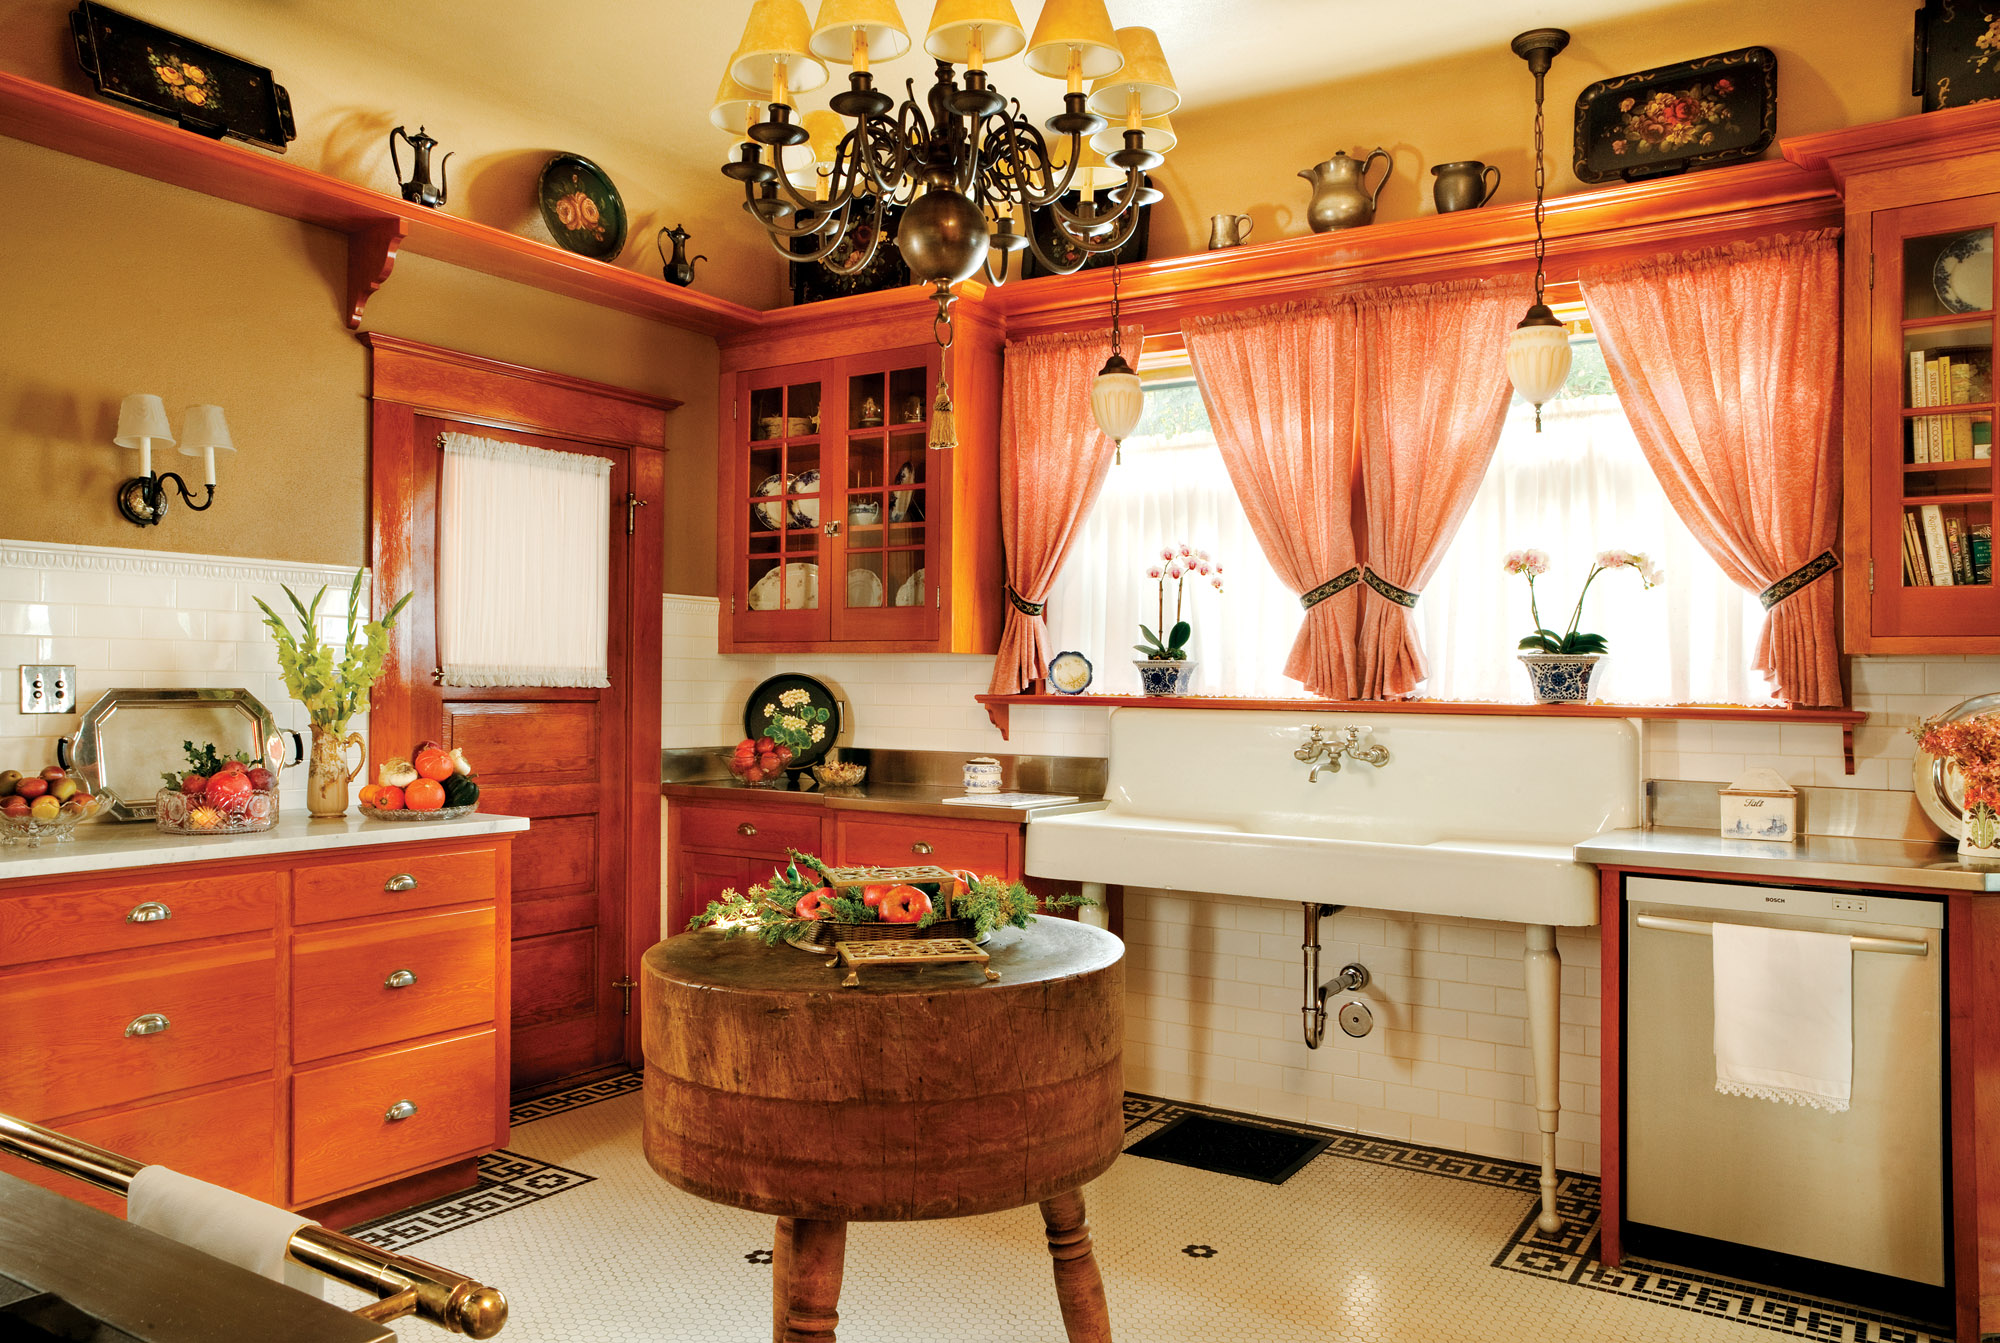 02_heise_kitchen_overall_IMG_2864